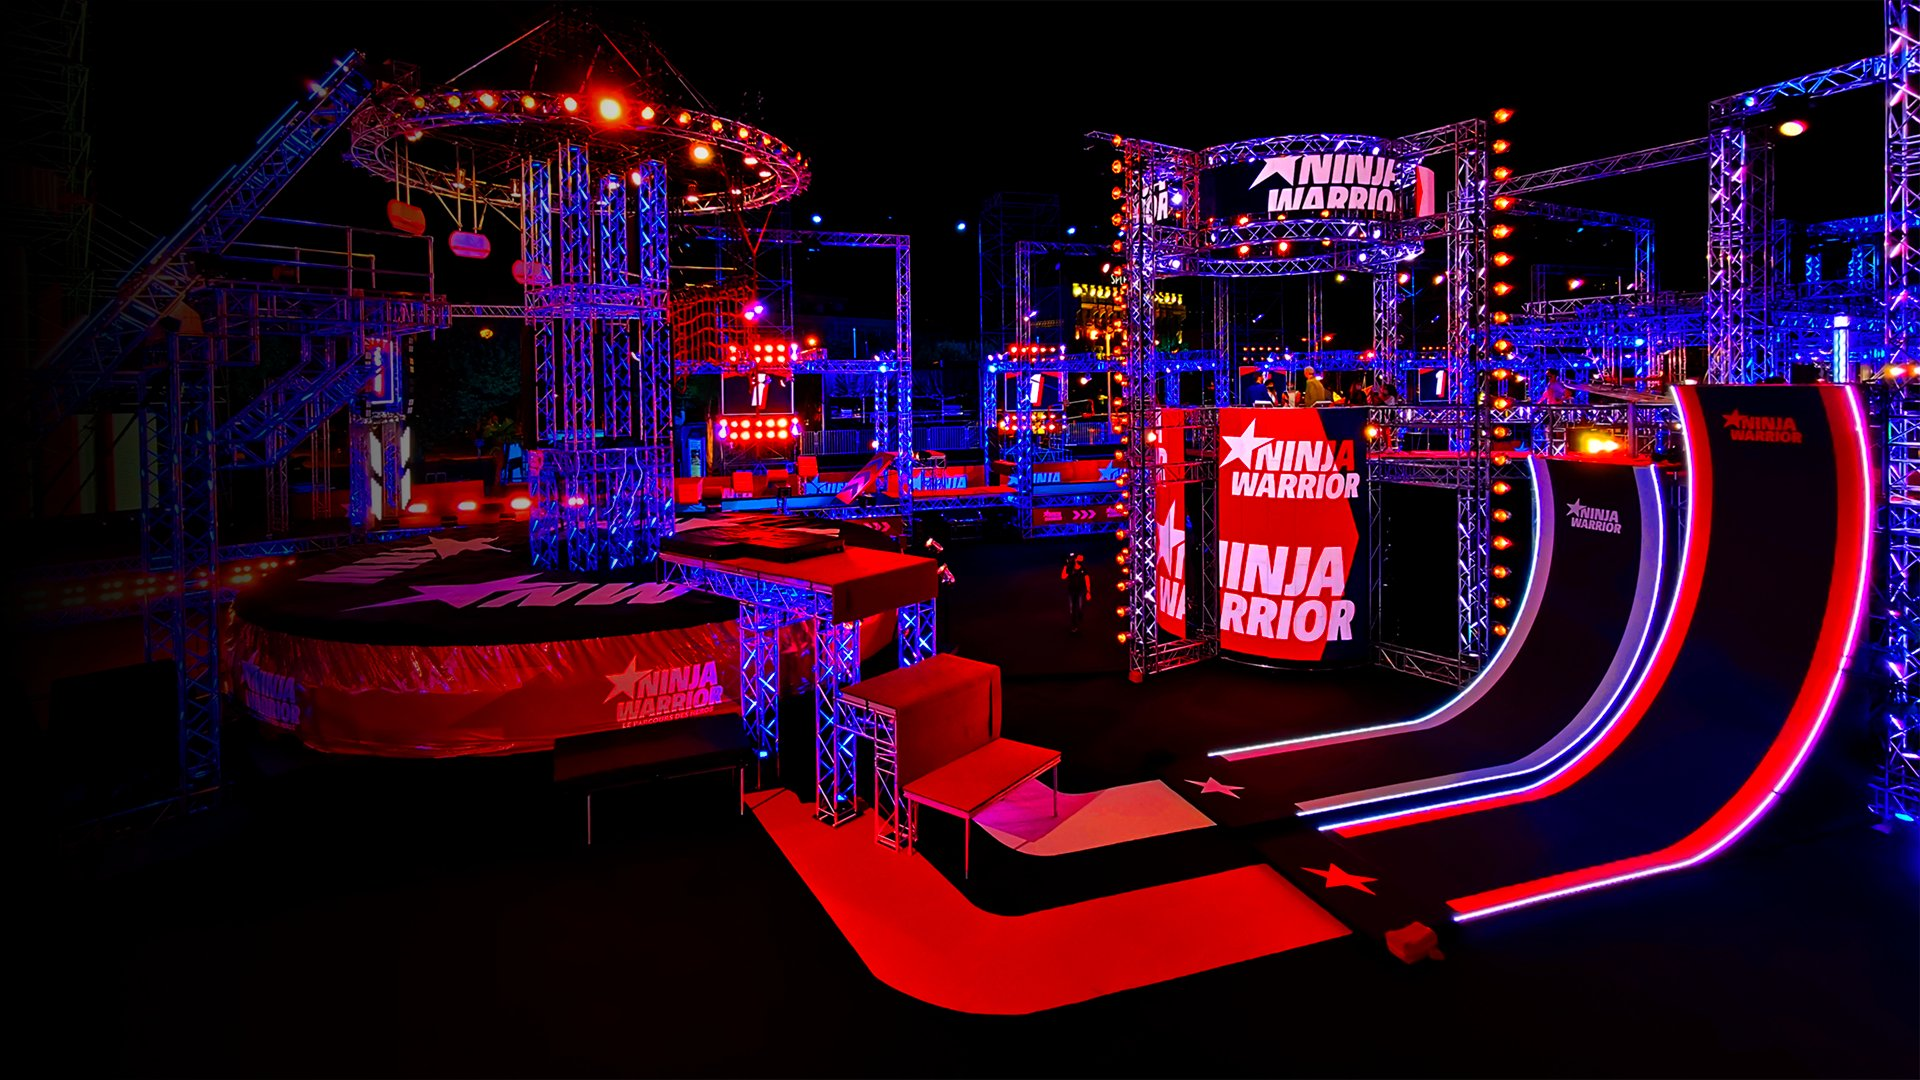 fond J-1 Finale Ninja Warrior : du fun avant la concentration !